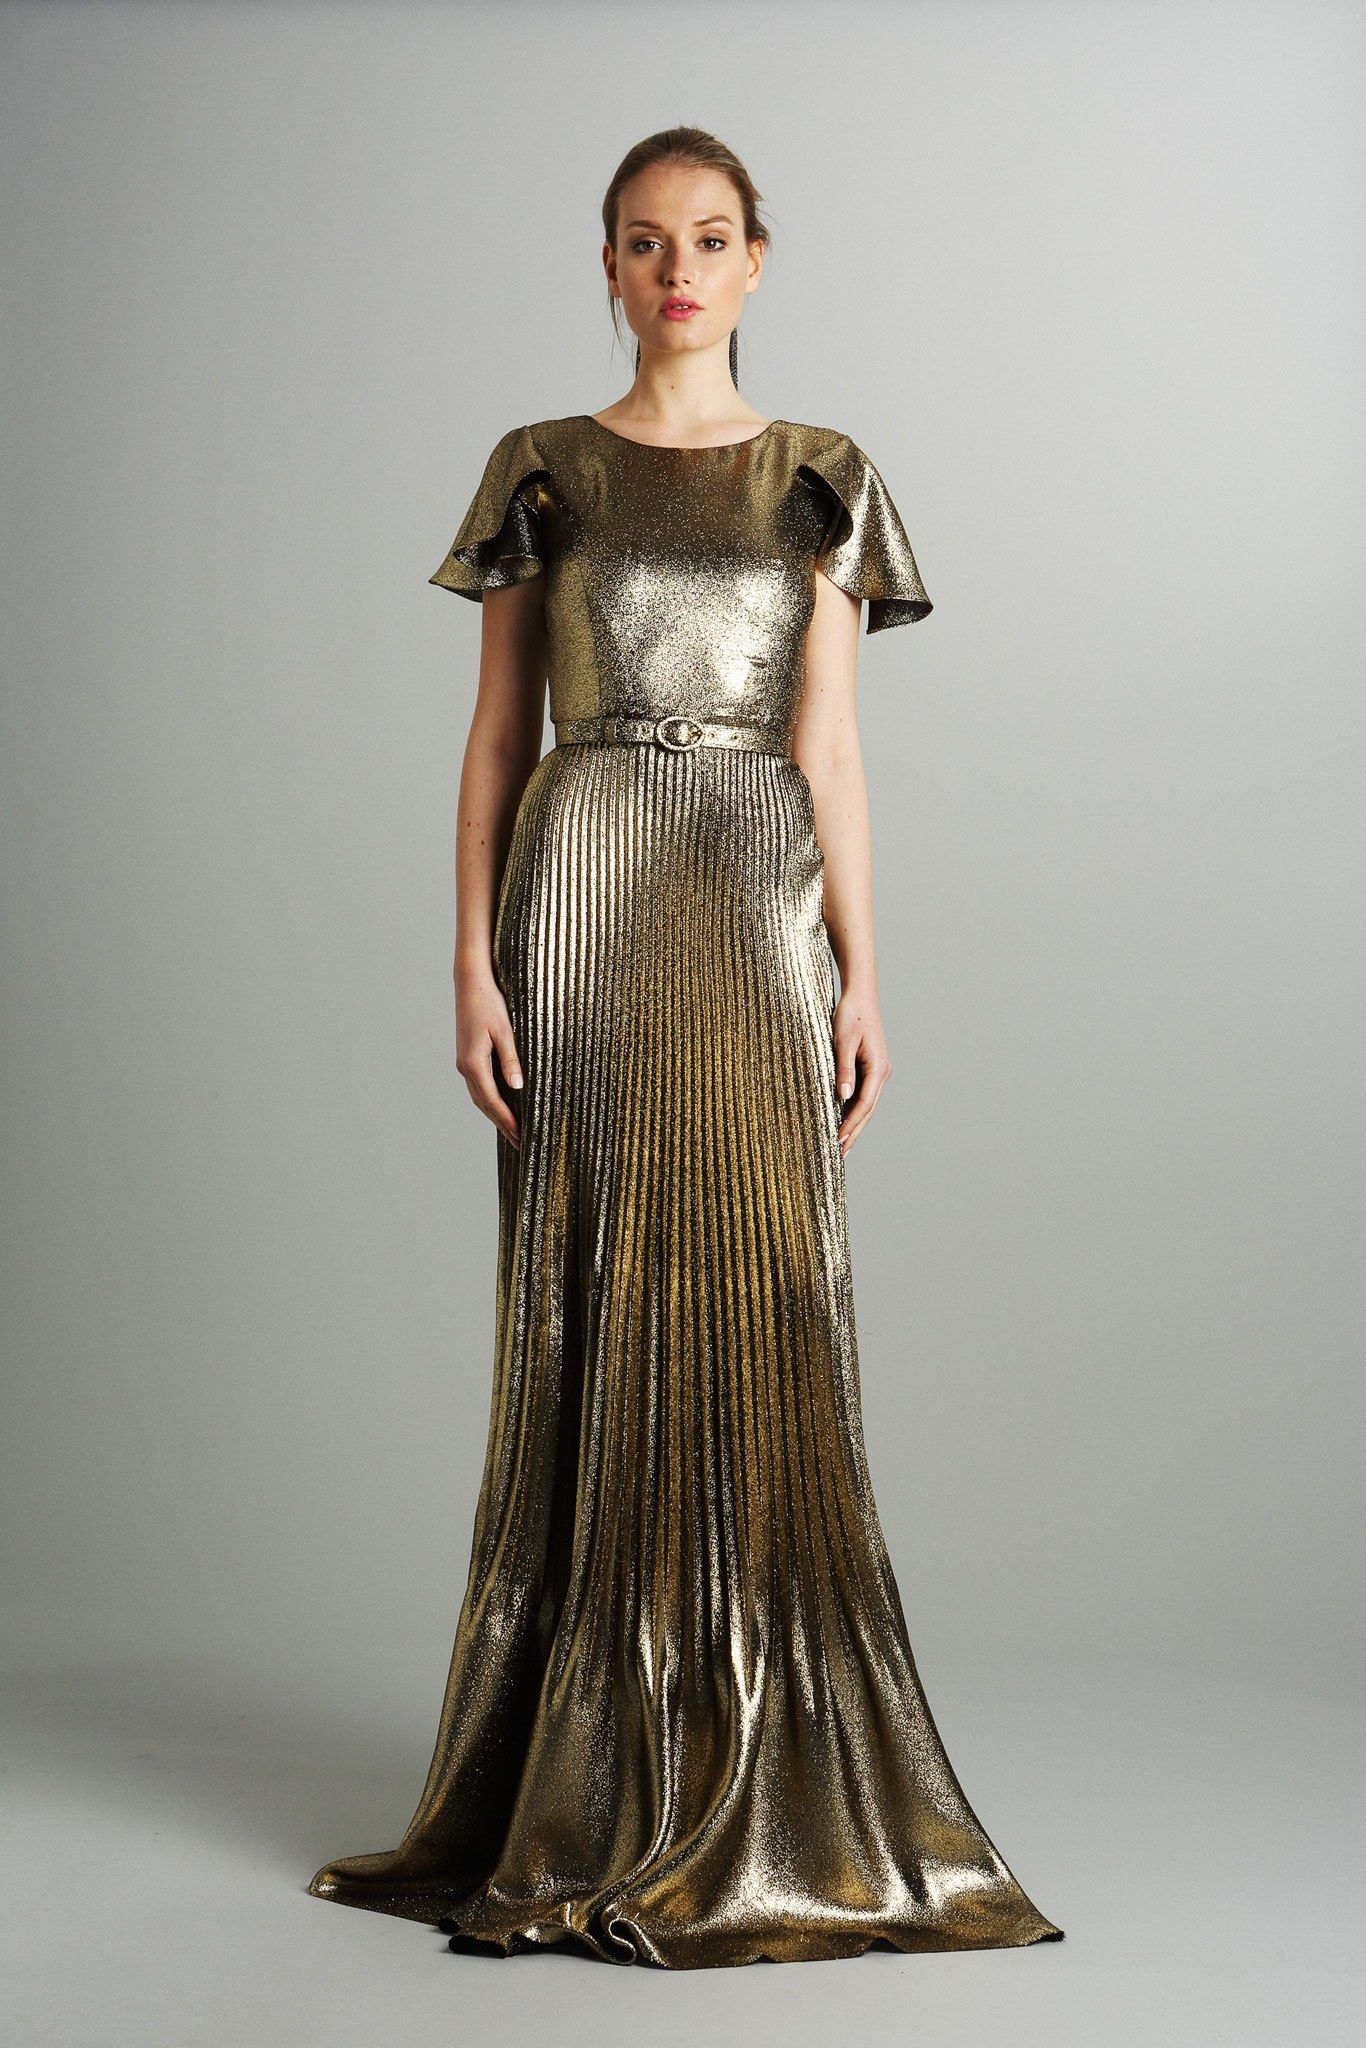 Luisa beccaria prefall fashion show formal gowns model